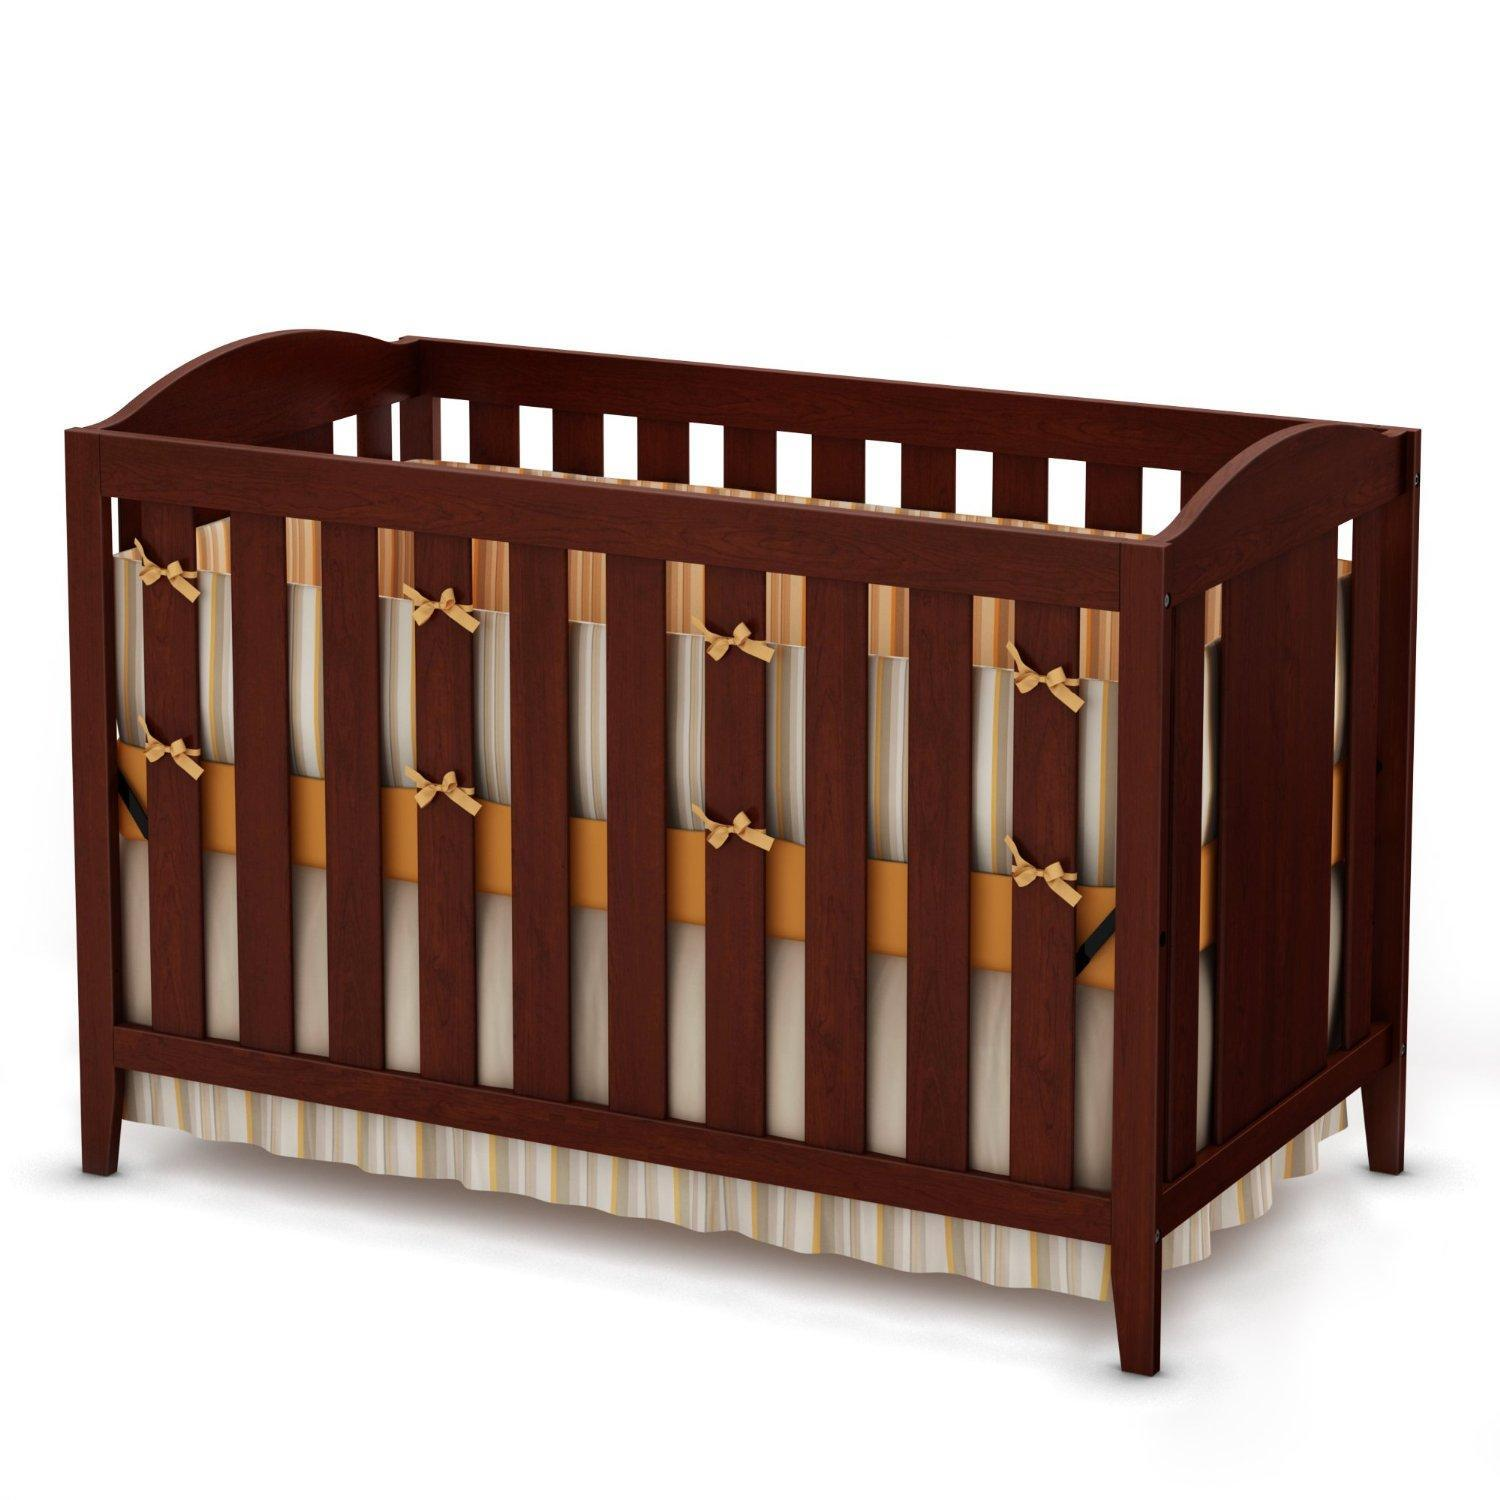 South Shore Crib Toddler Bed By Oj Commerce 3246350